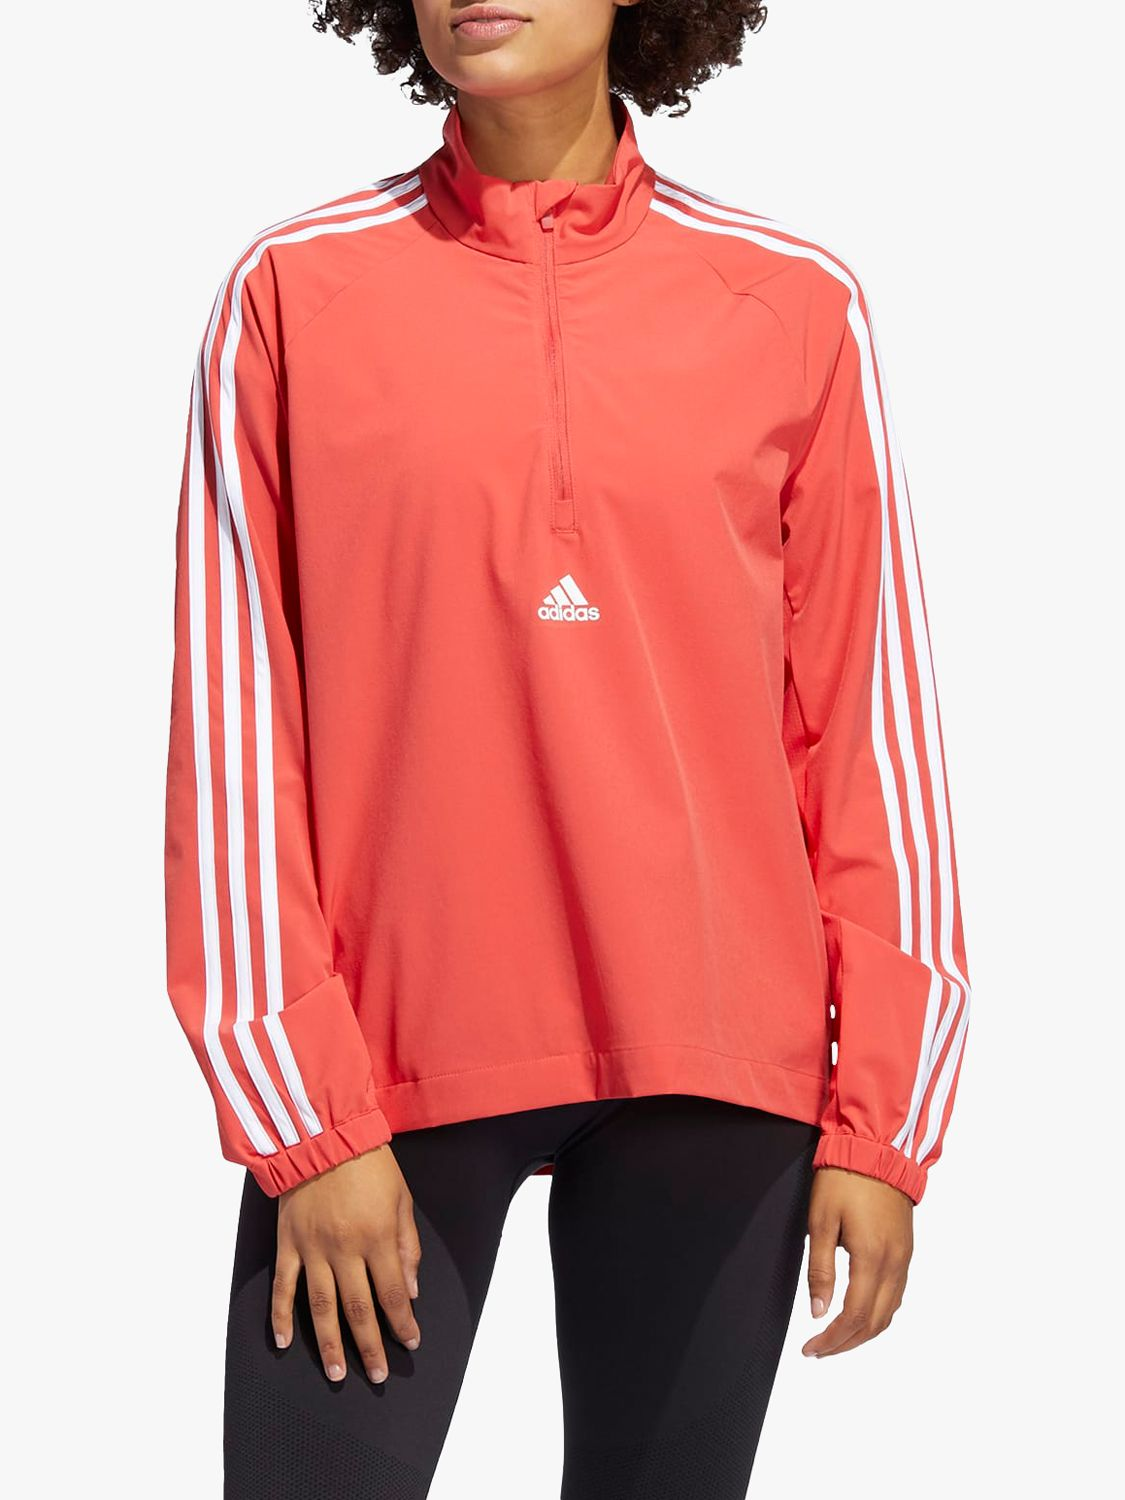 Adidas adidas 3-Stripes Cover-Up Women's Training Jacket